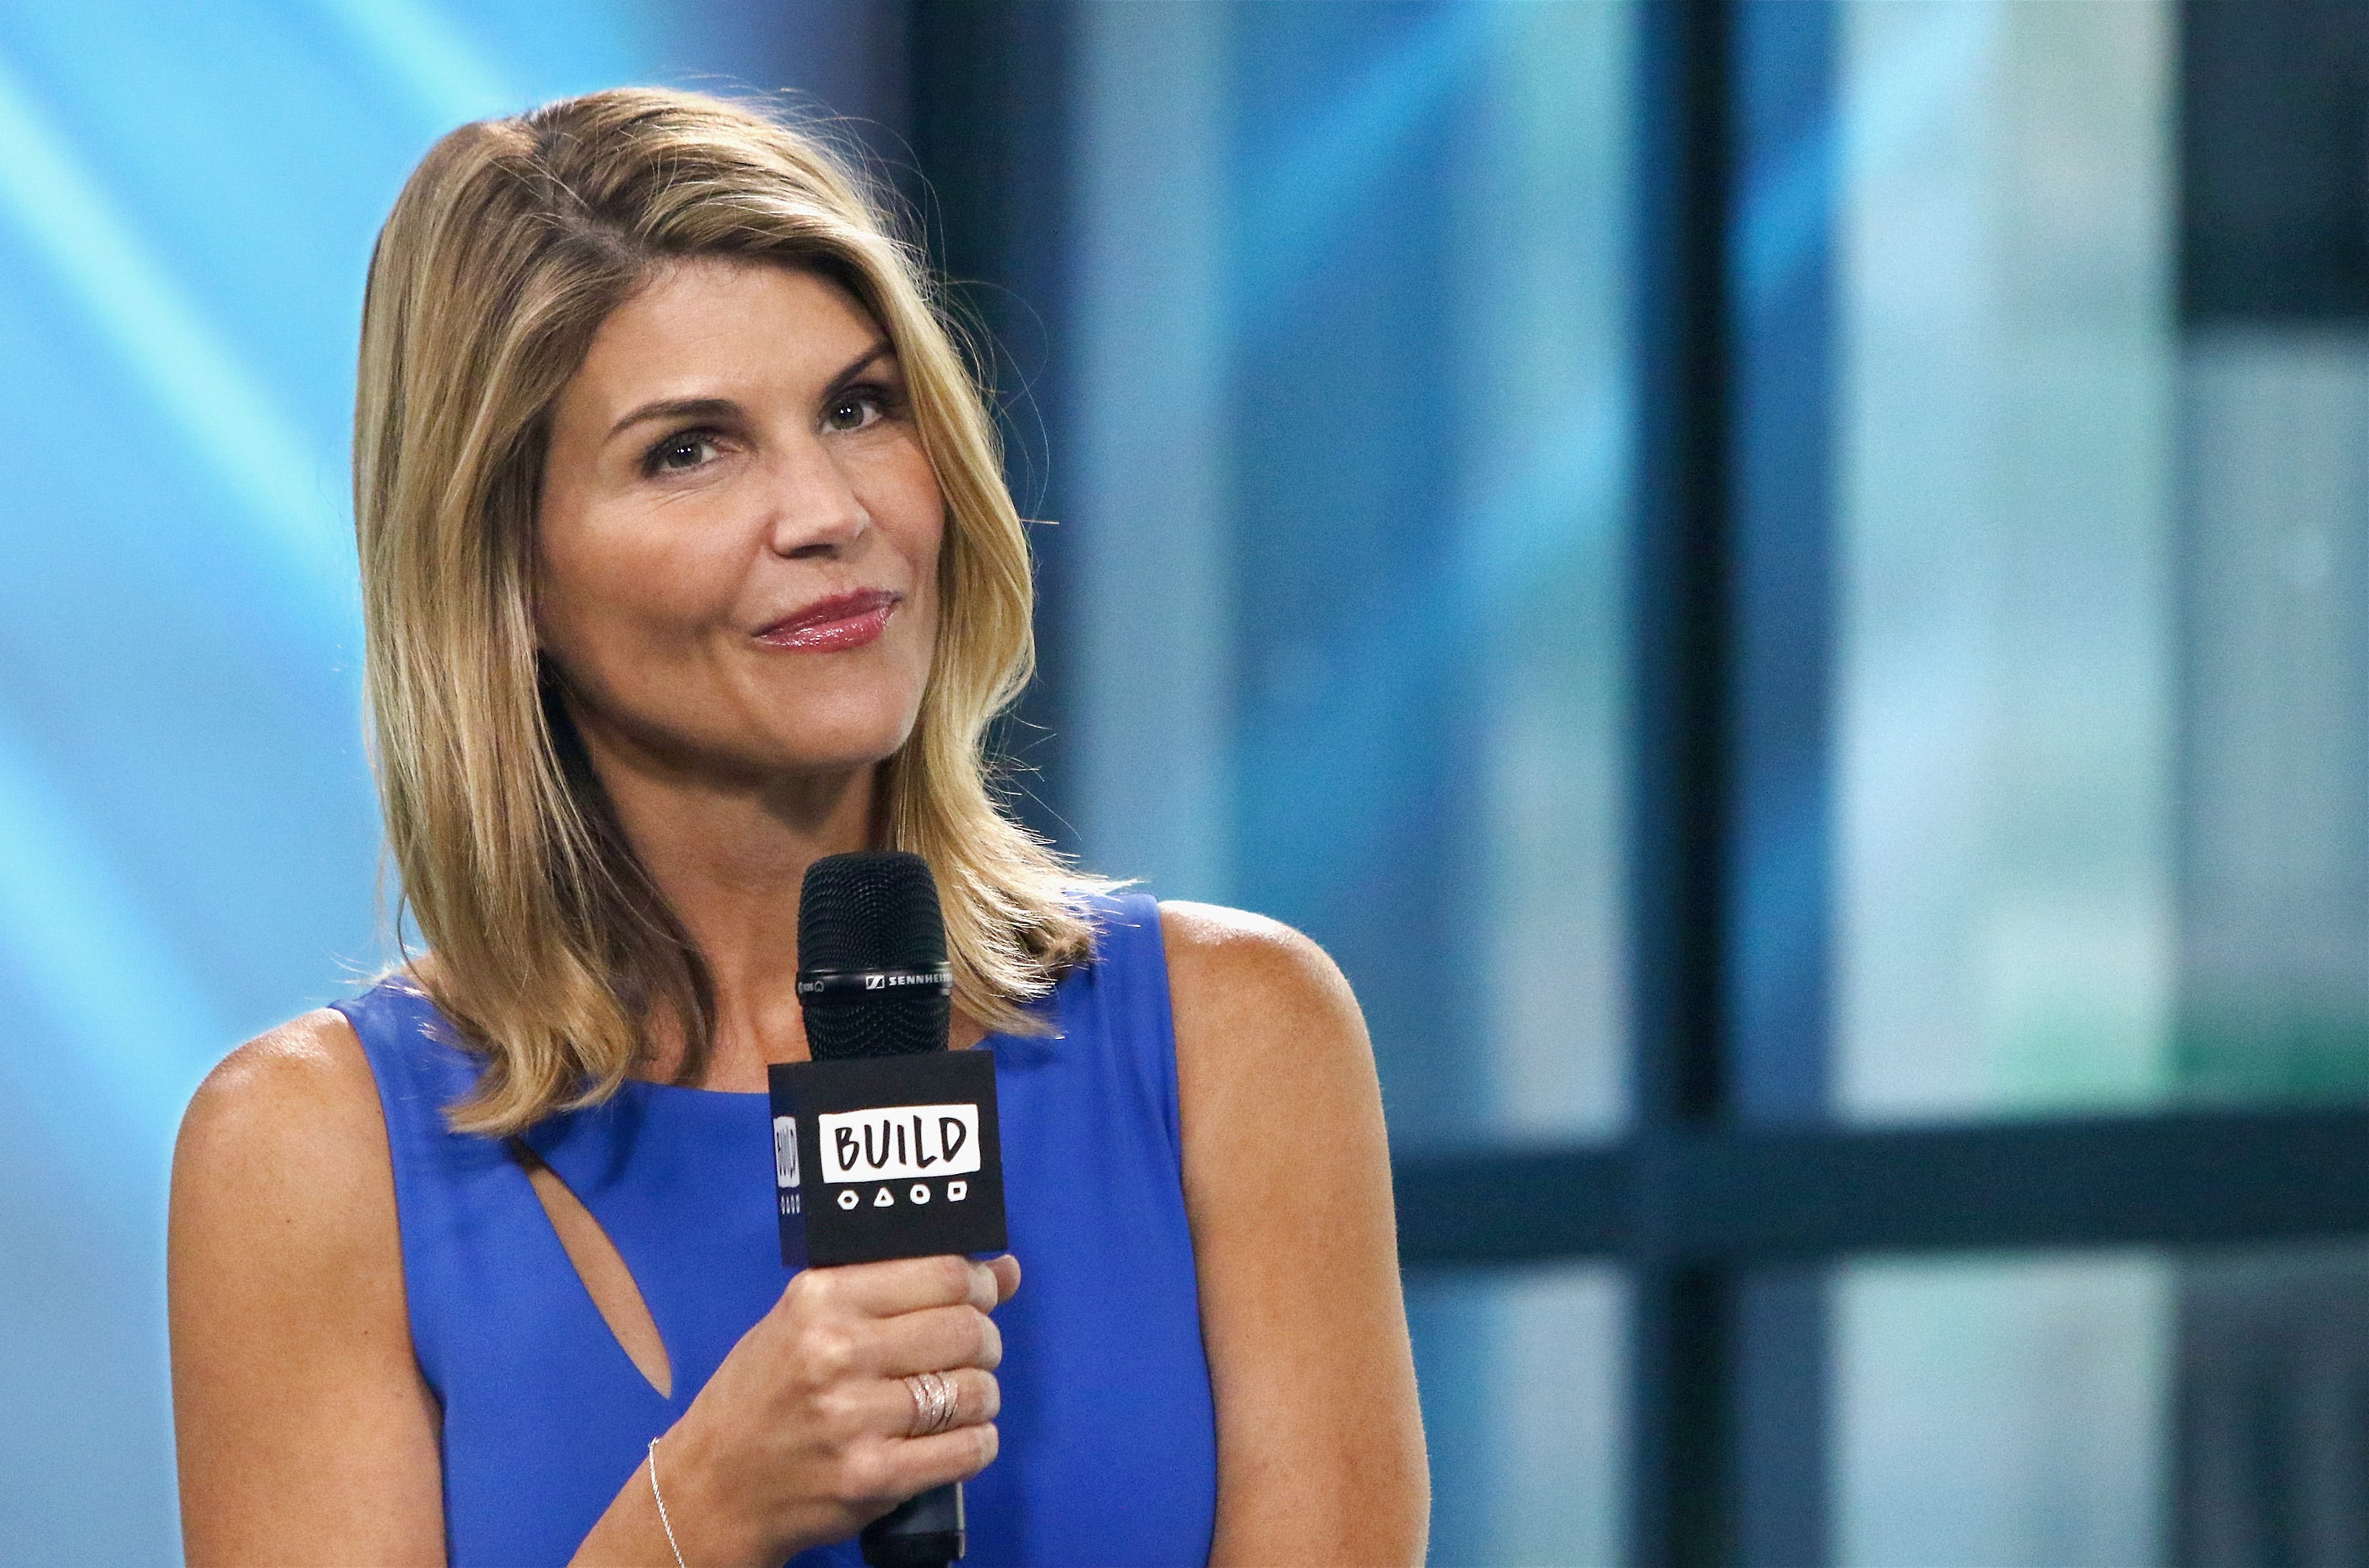 Lori Loughlin fired by Hallmark after admissions scandal; Olivia Jade dropped by sponsors